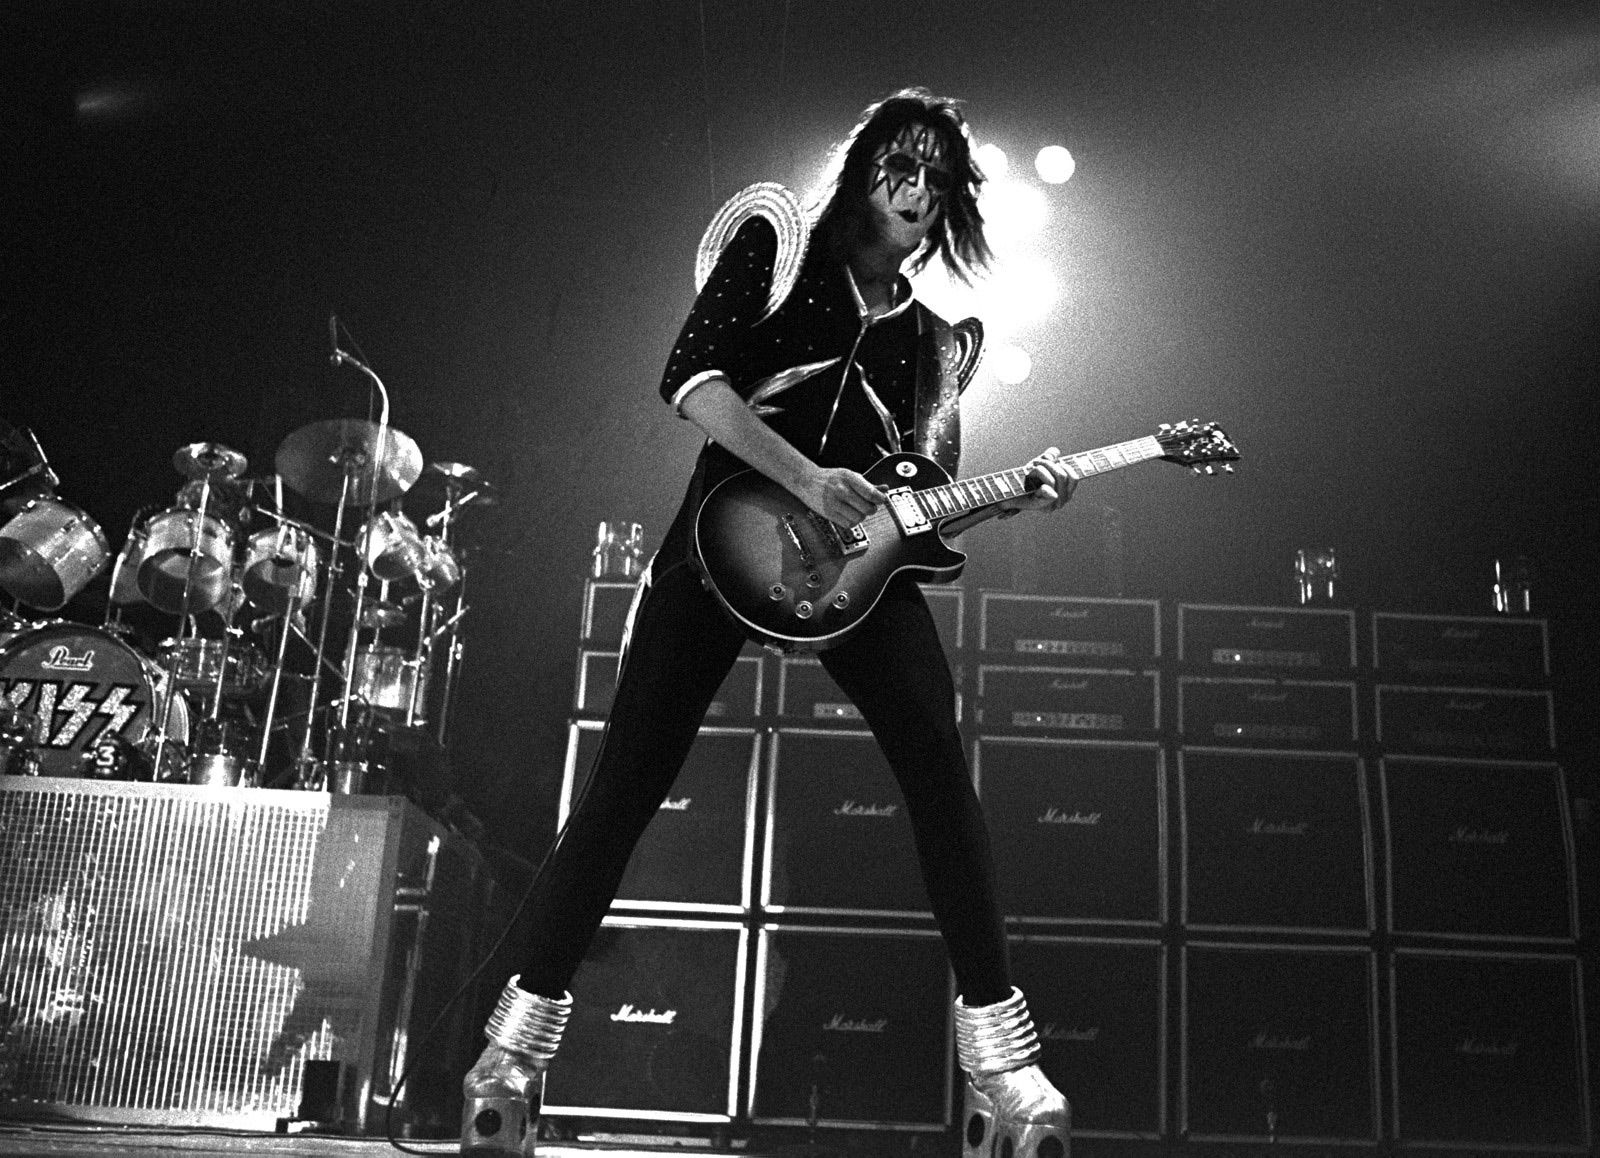 Ace Frehley - 1976 - Kiss guitarist Ace Frehley with his Gibson Les Paul Standard